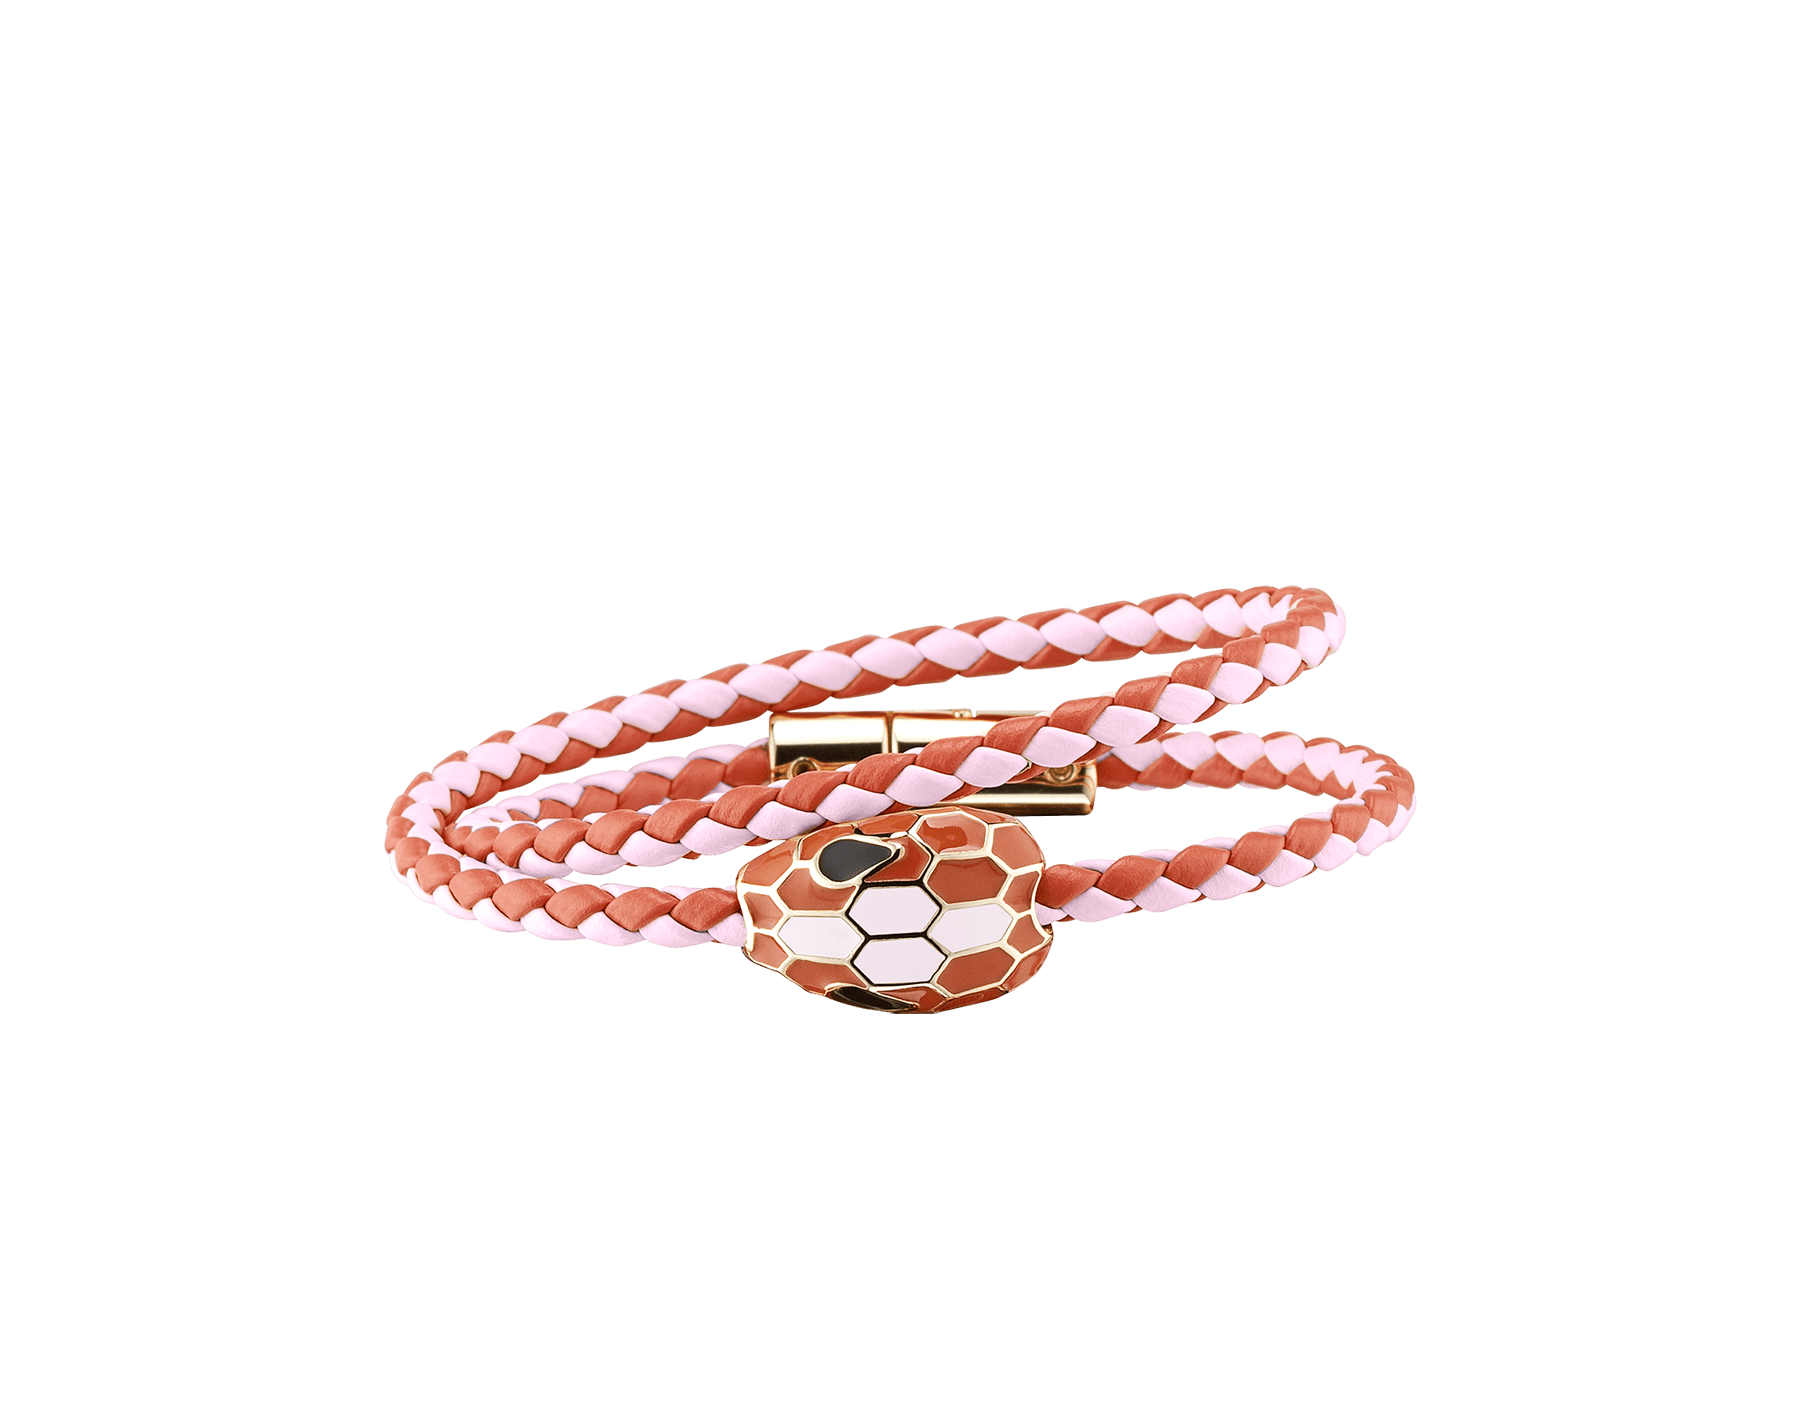 Serpenti Forever multi-coiled braid bracelet in rosa di francia and imperial topaz woven calf leather, with the iconic snakehead décor imperial topaz and rosa di francia enamel . SerpDoubleBraid-WCL-RdFIT image 1